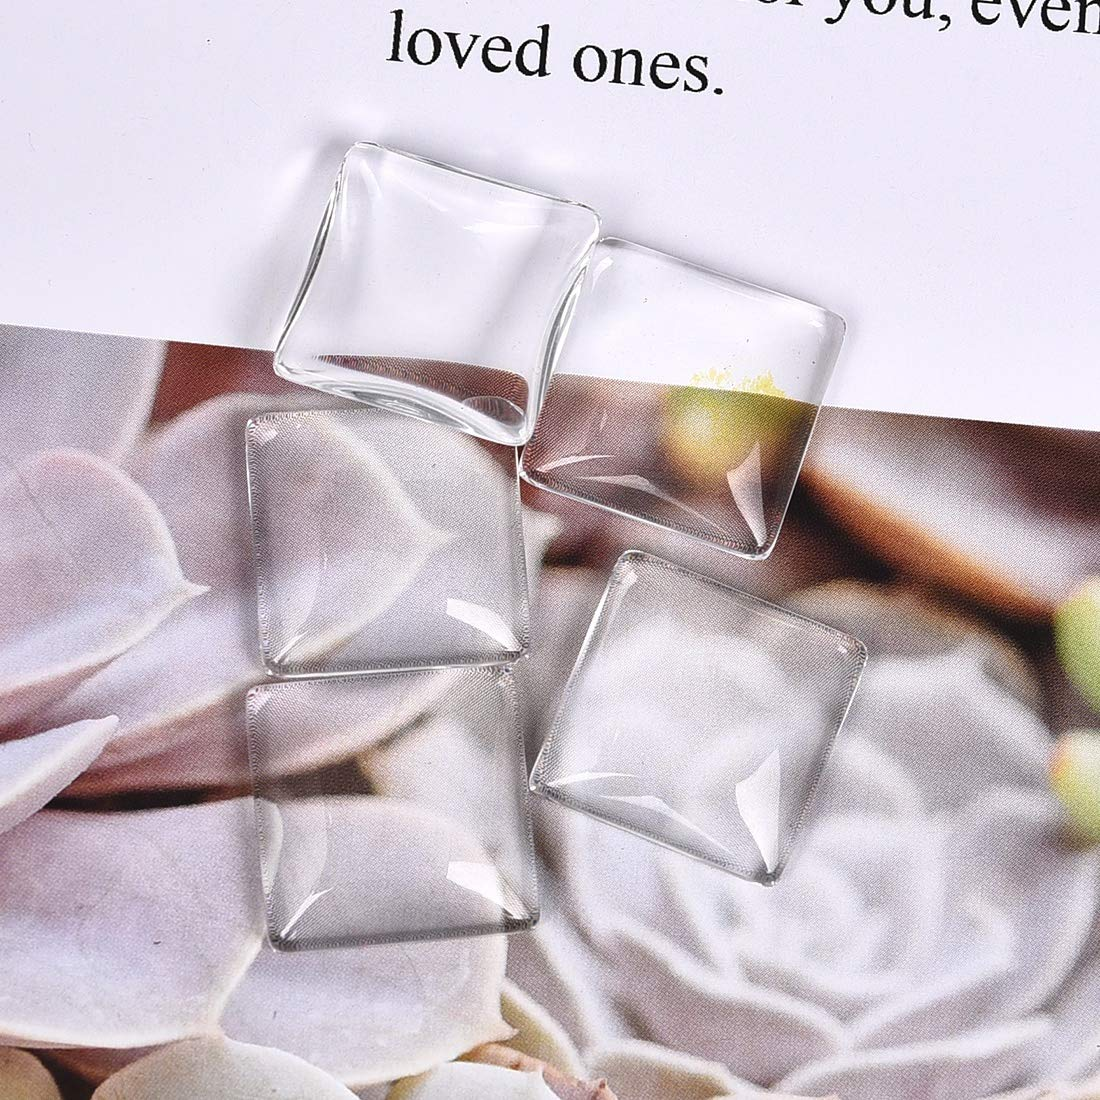 Square Glass Cabochons Clear Dome Tiles for Cameo Pendants Photo Craft Jewelry Making 30mm 10Pcs